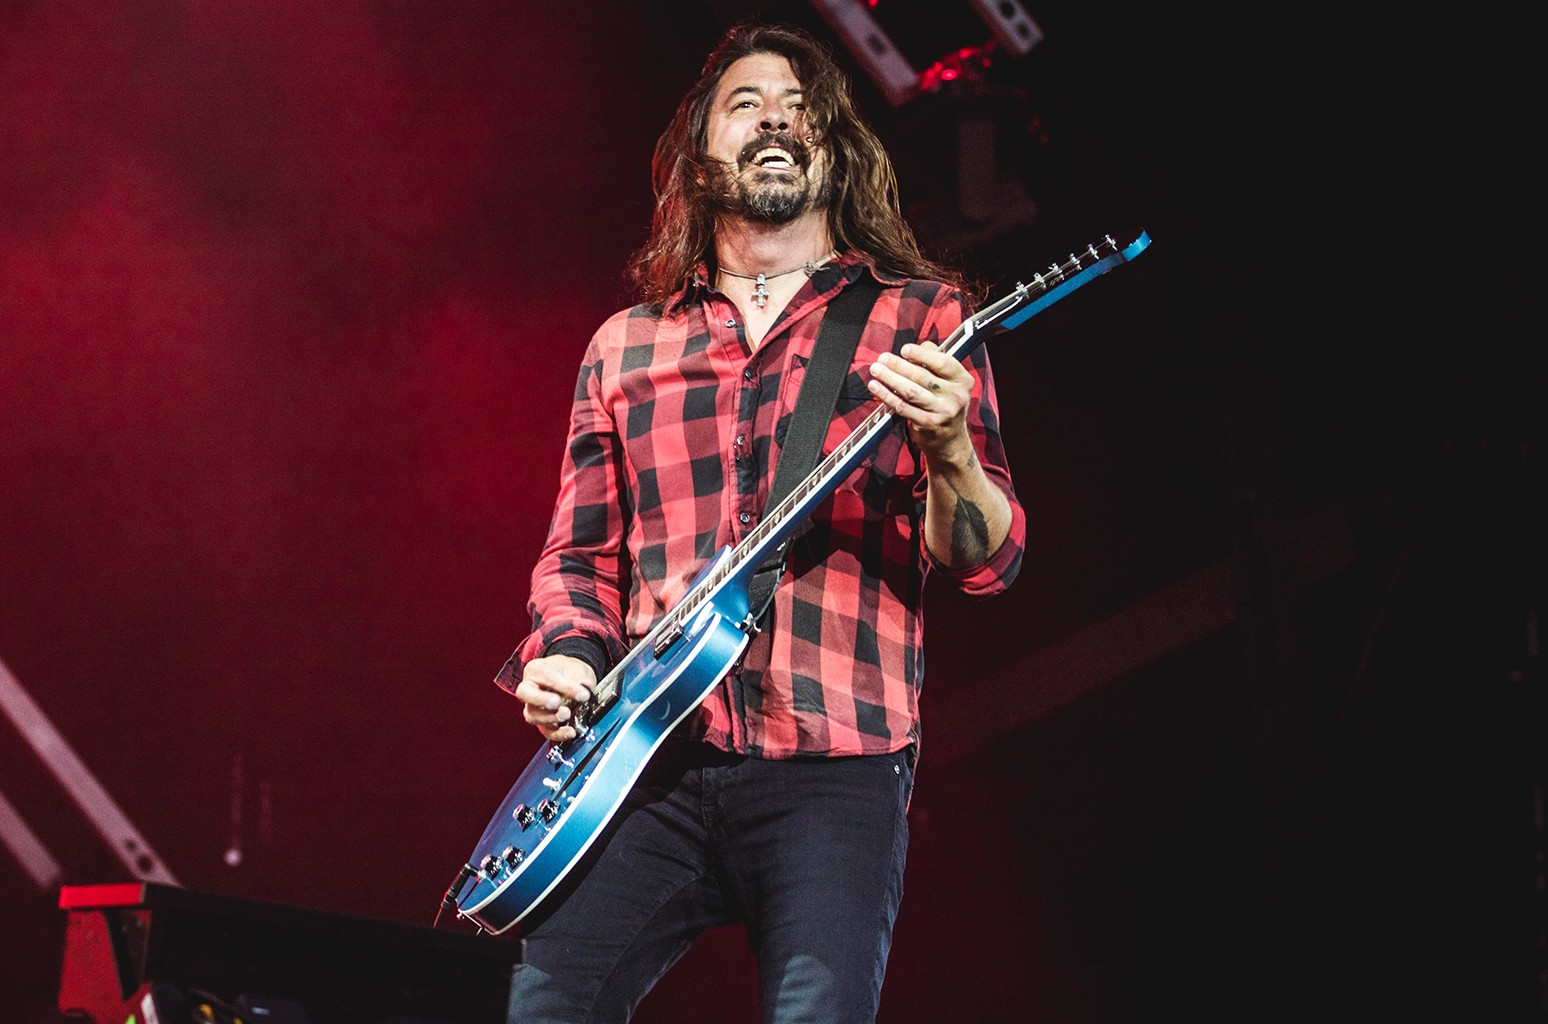 foo-fighters-invite-10-year-old-fan-on-stage-wunderkind-steals-show